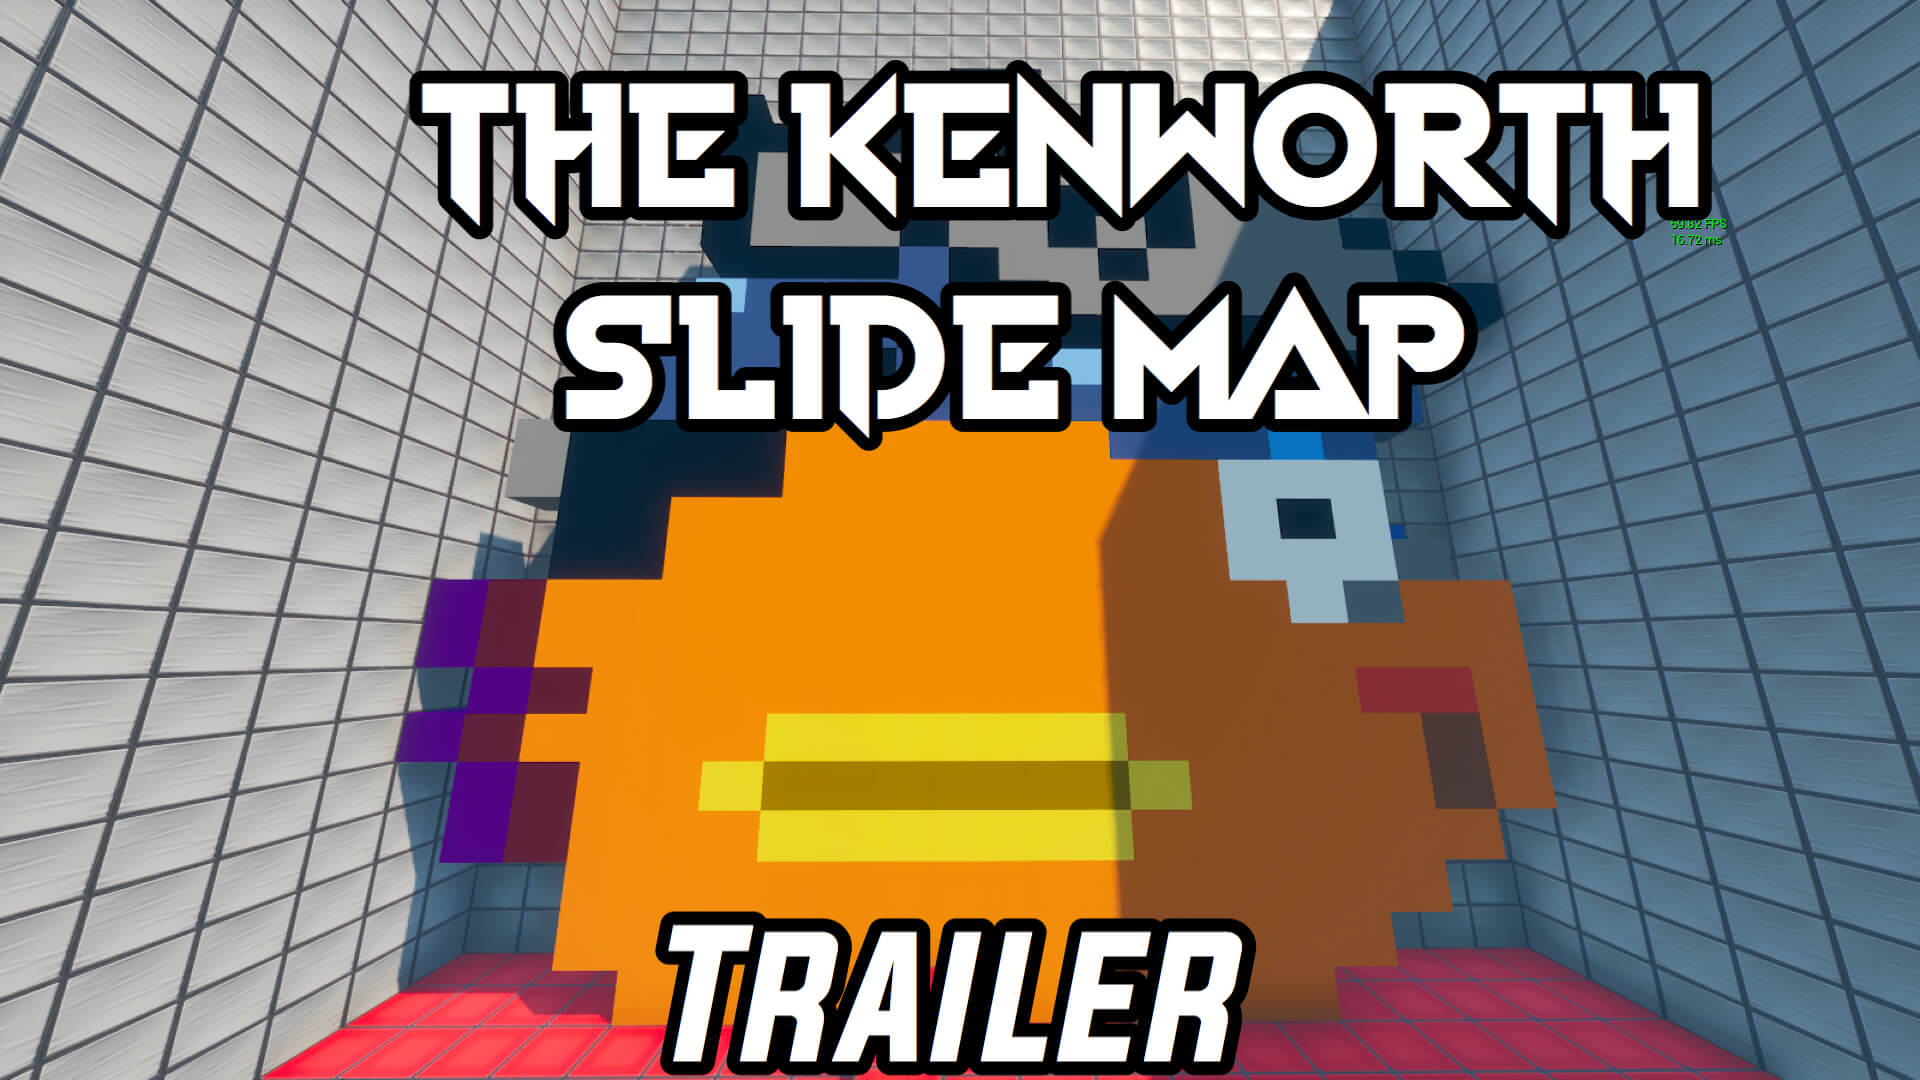 THE KENWORTH SLIDE MAP